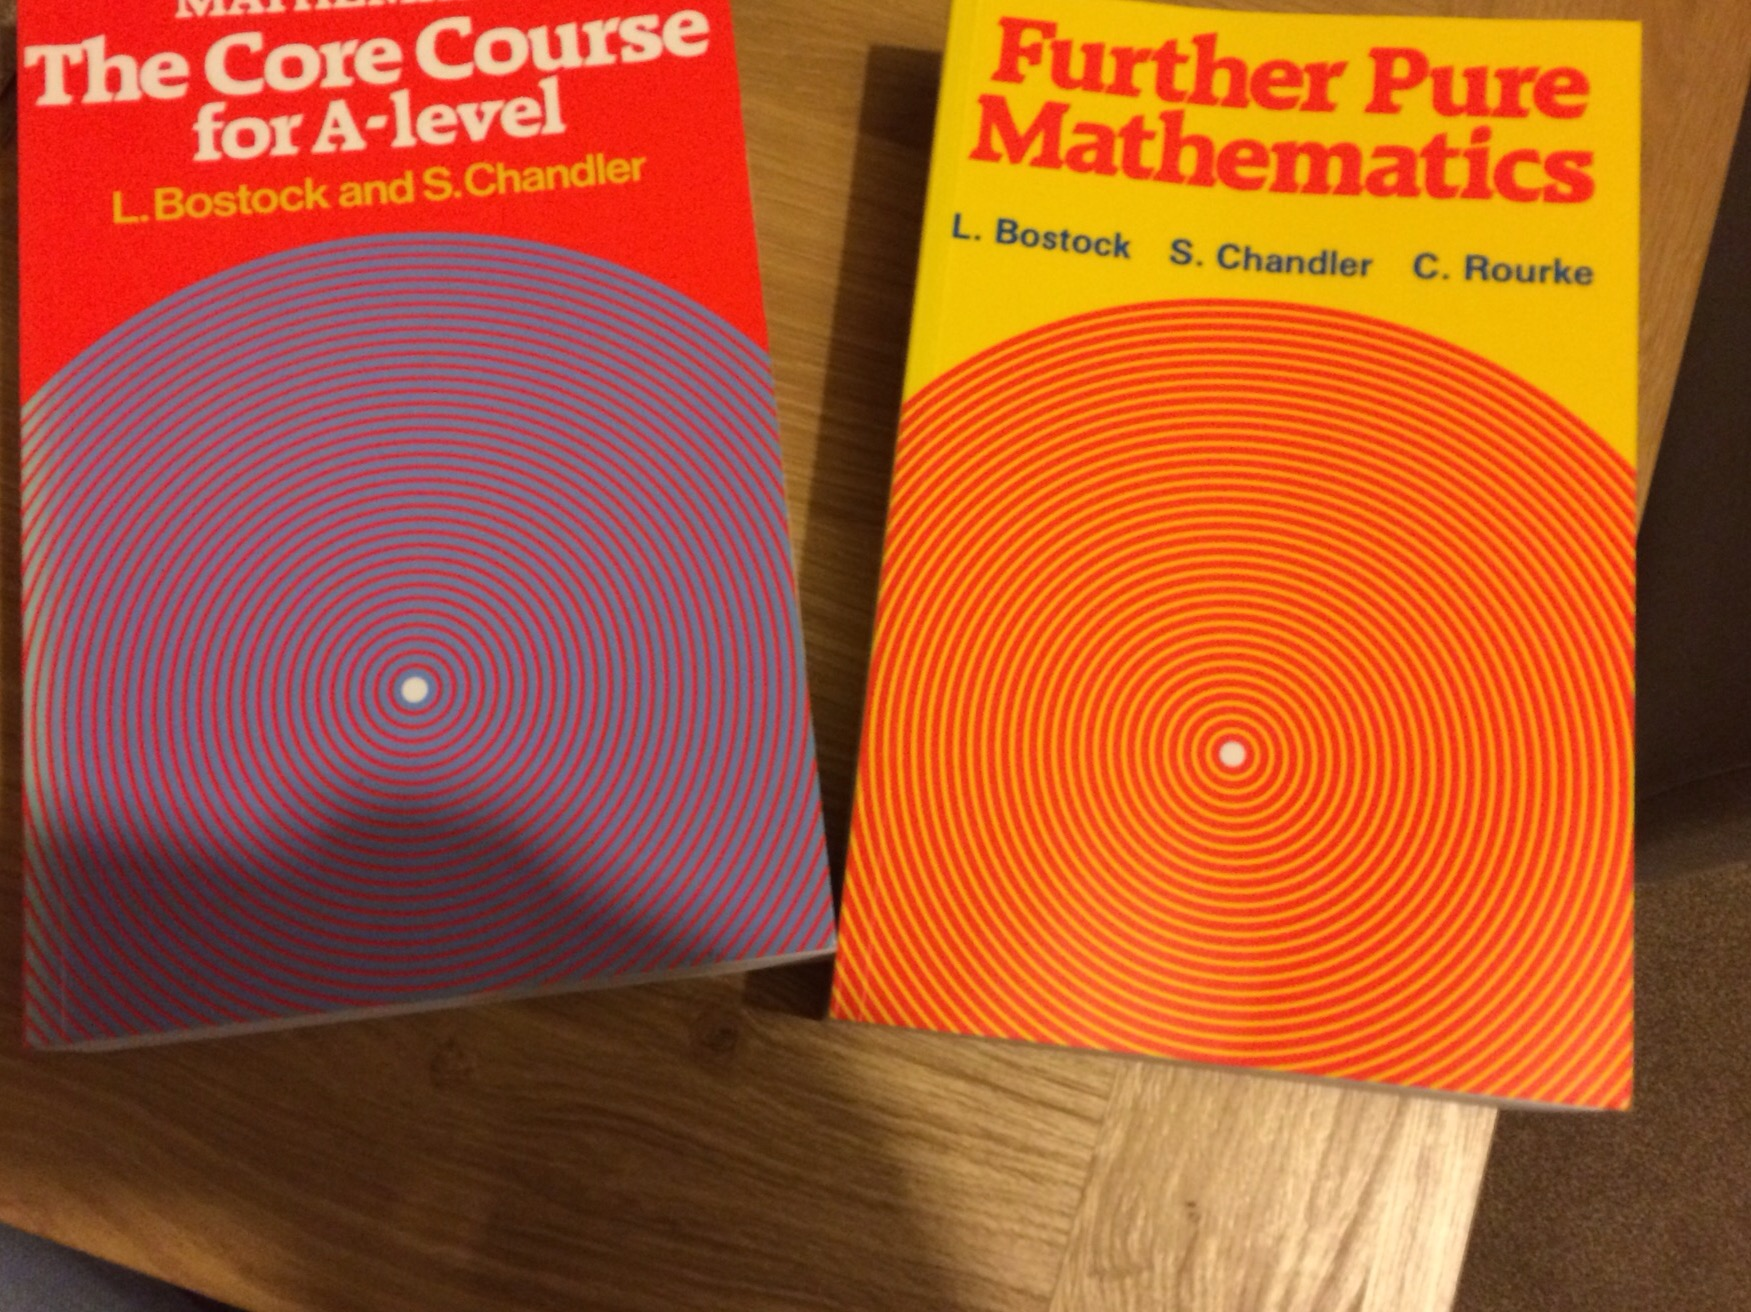 Bostock and chandler pure mathematics pdf download books fandeluxe Image collections